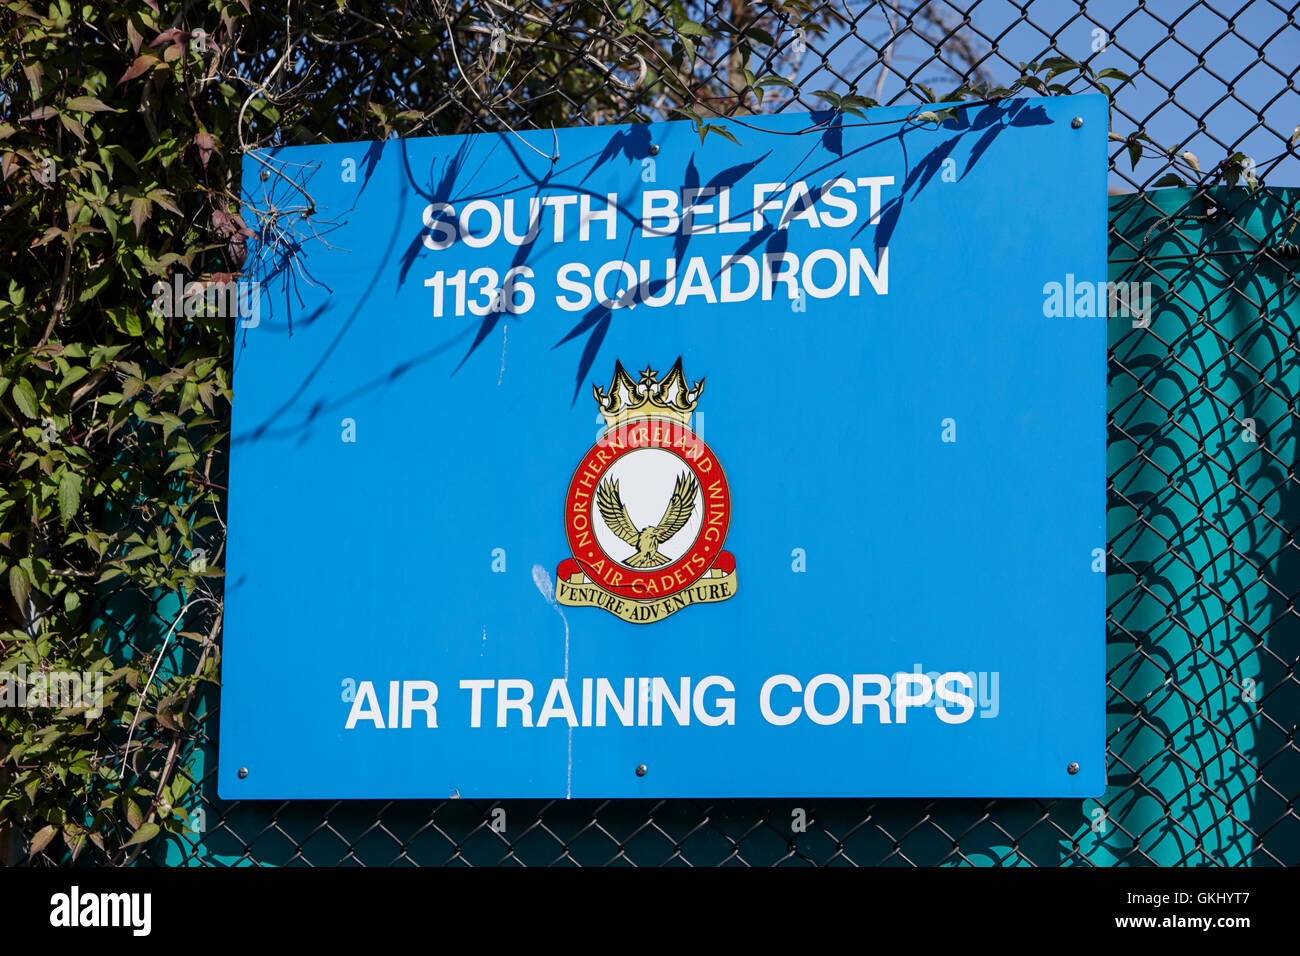 british army air training corps south belfast 1136 squadron sign insignia - Stock Image